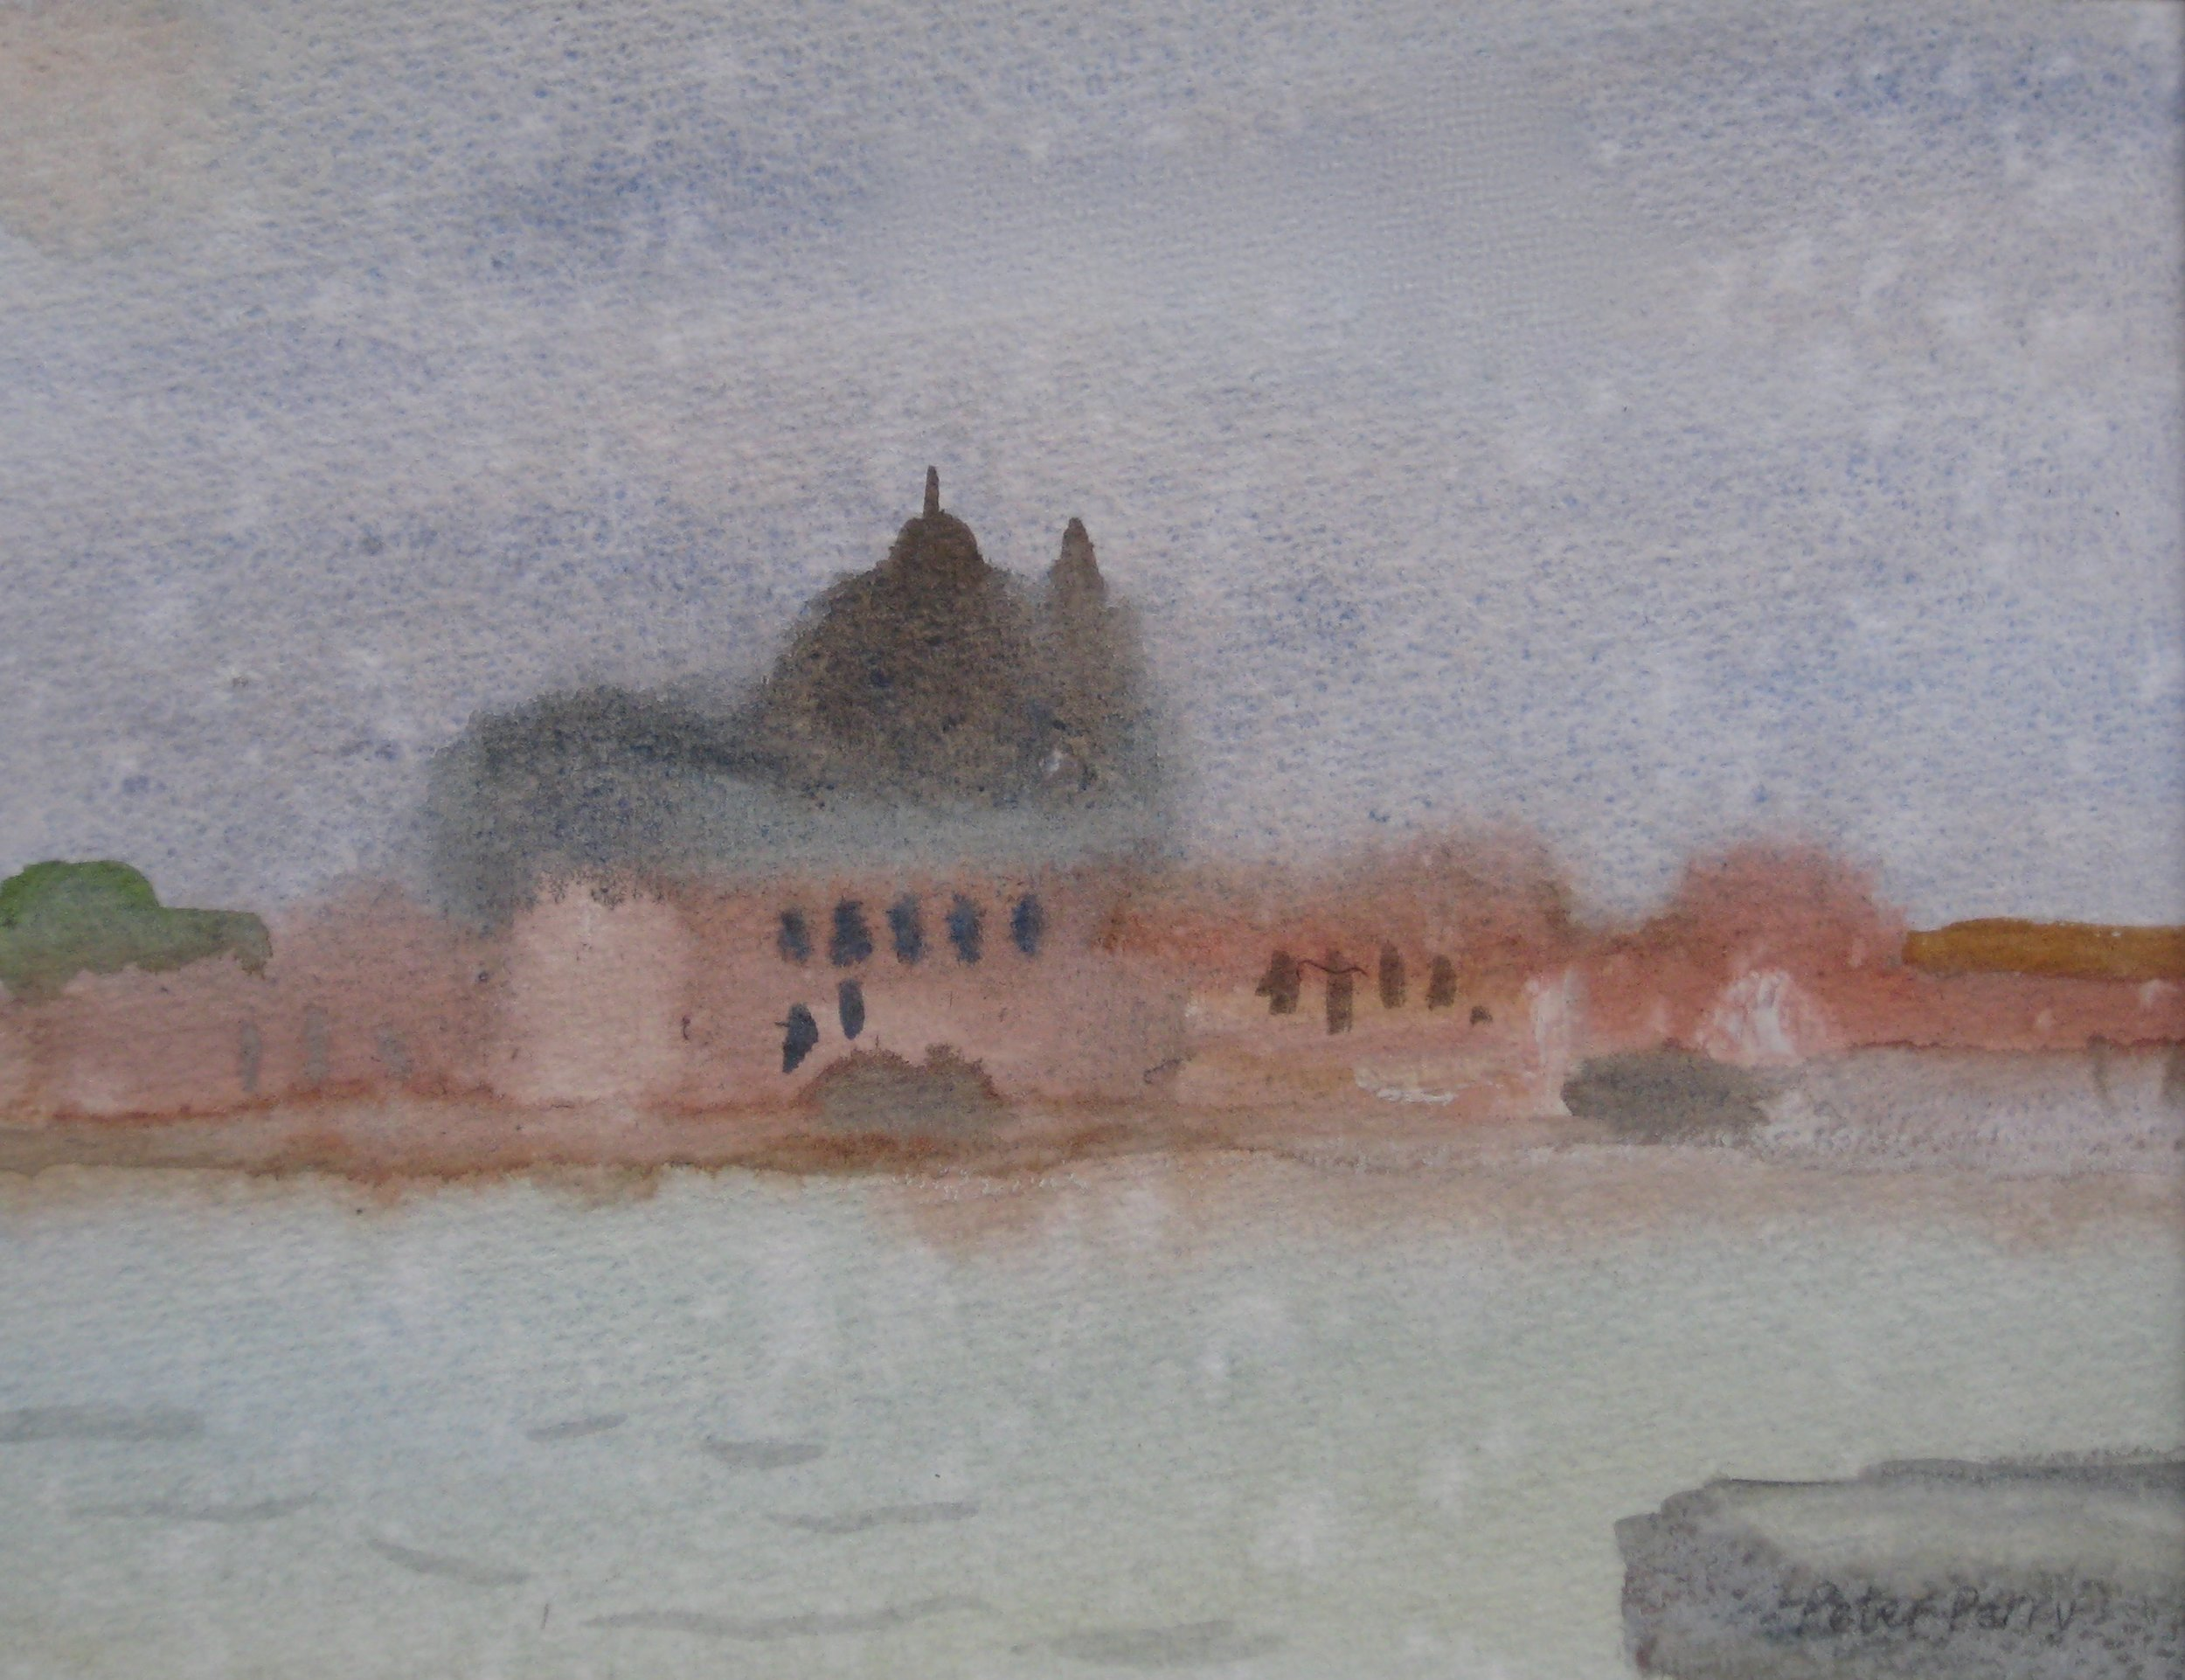 "VENICE III, WET DAY  7.5x5.5"" (19x14cm)  Watercolour"